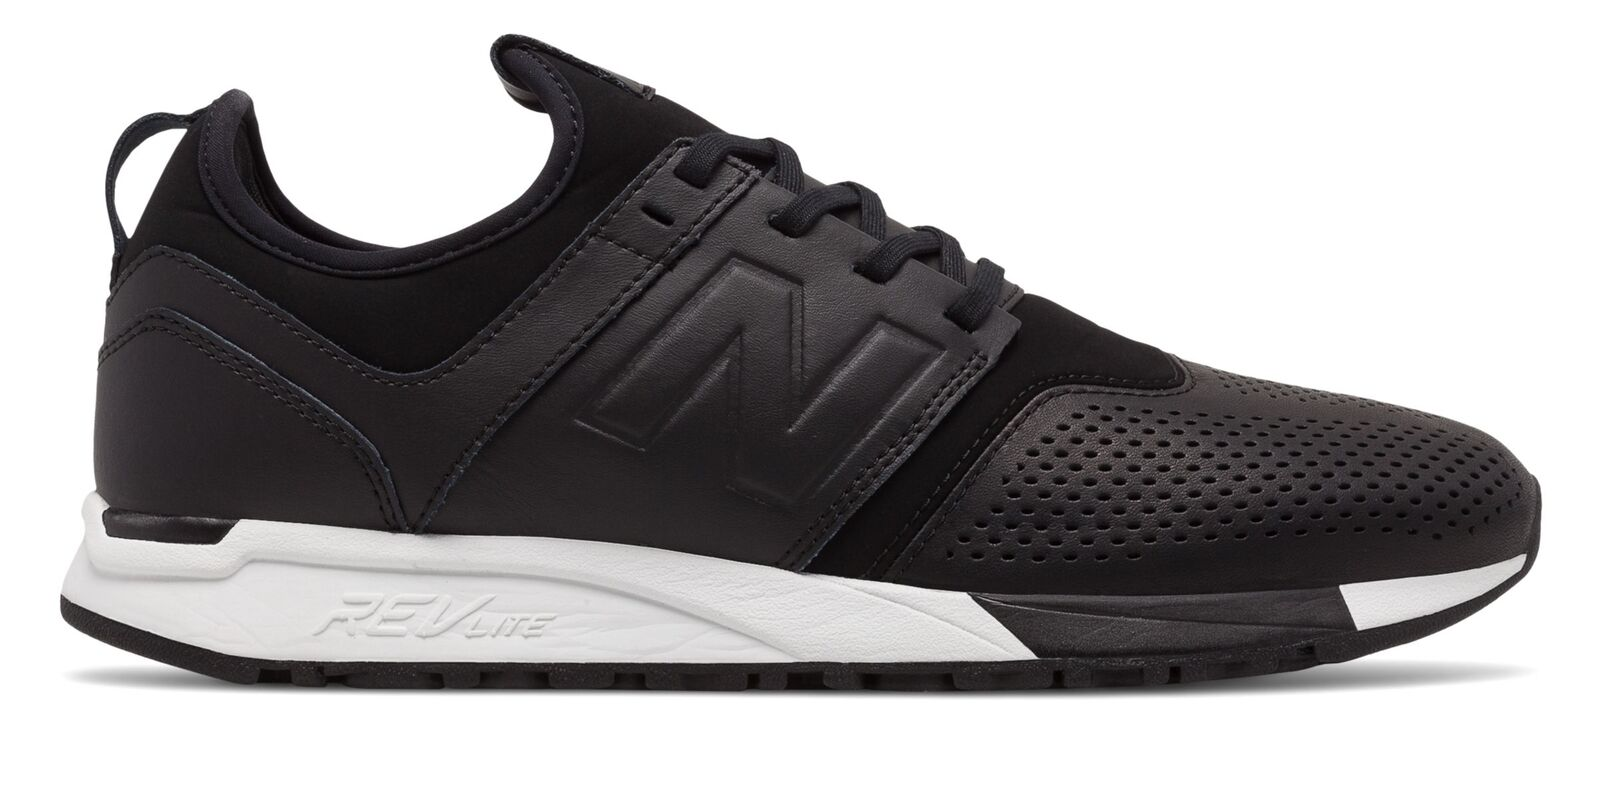 New Balance Homme 247 Leather Chaussures Noir with Blanc